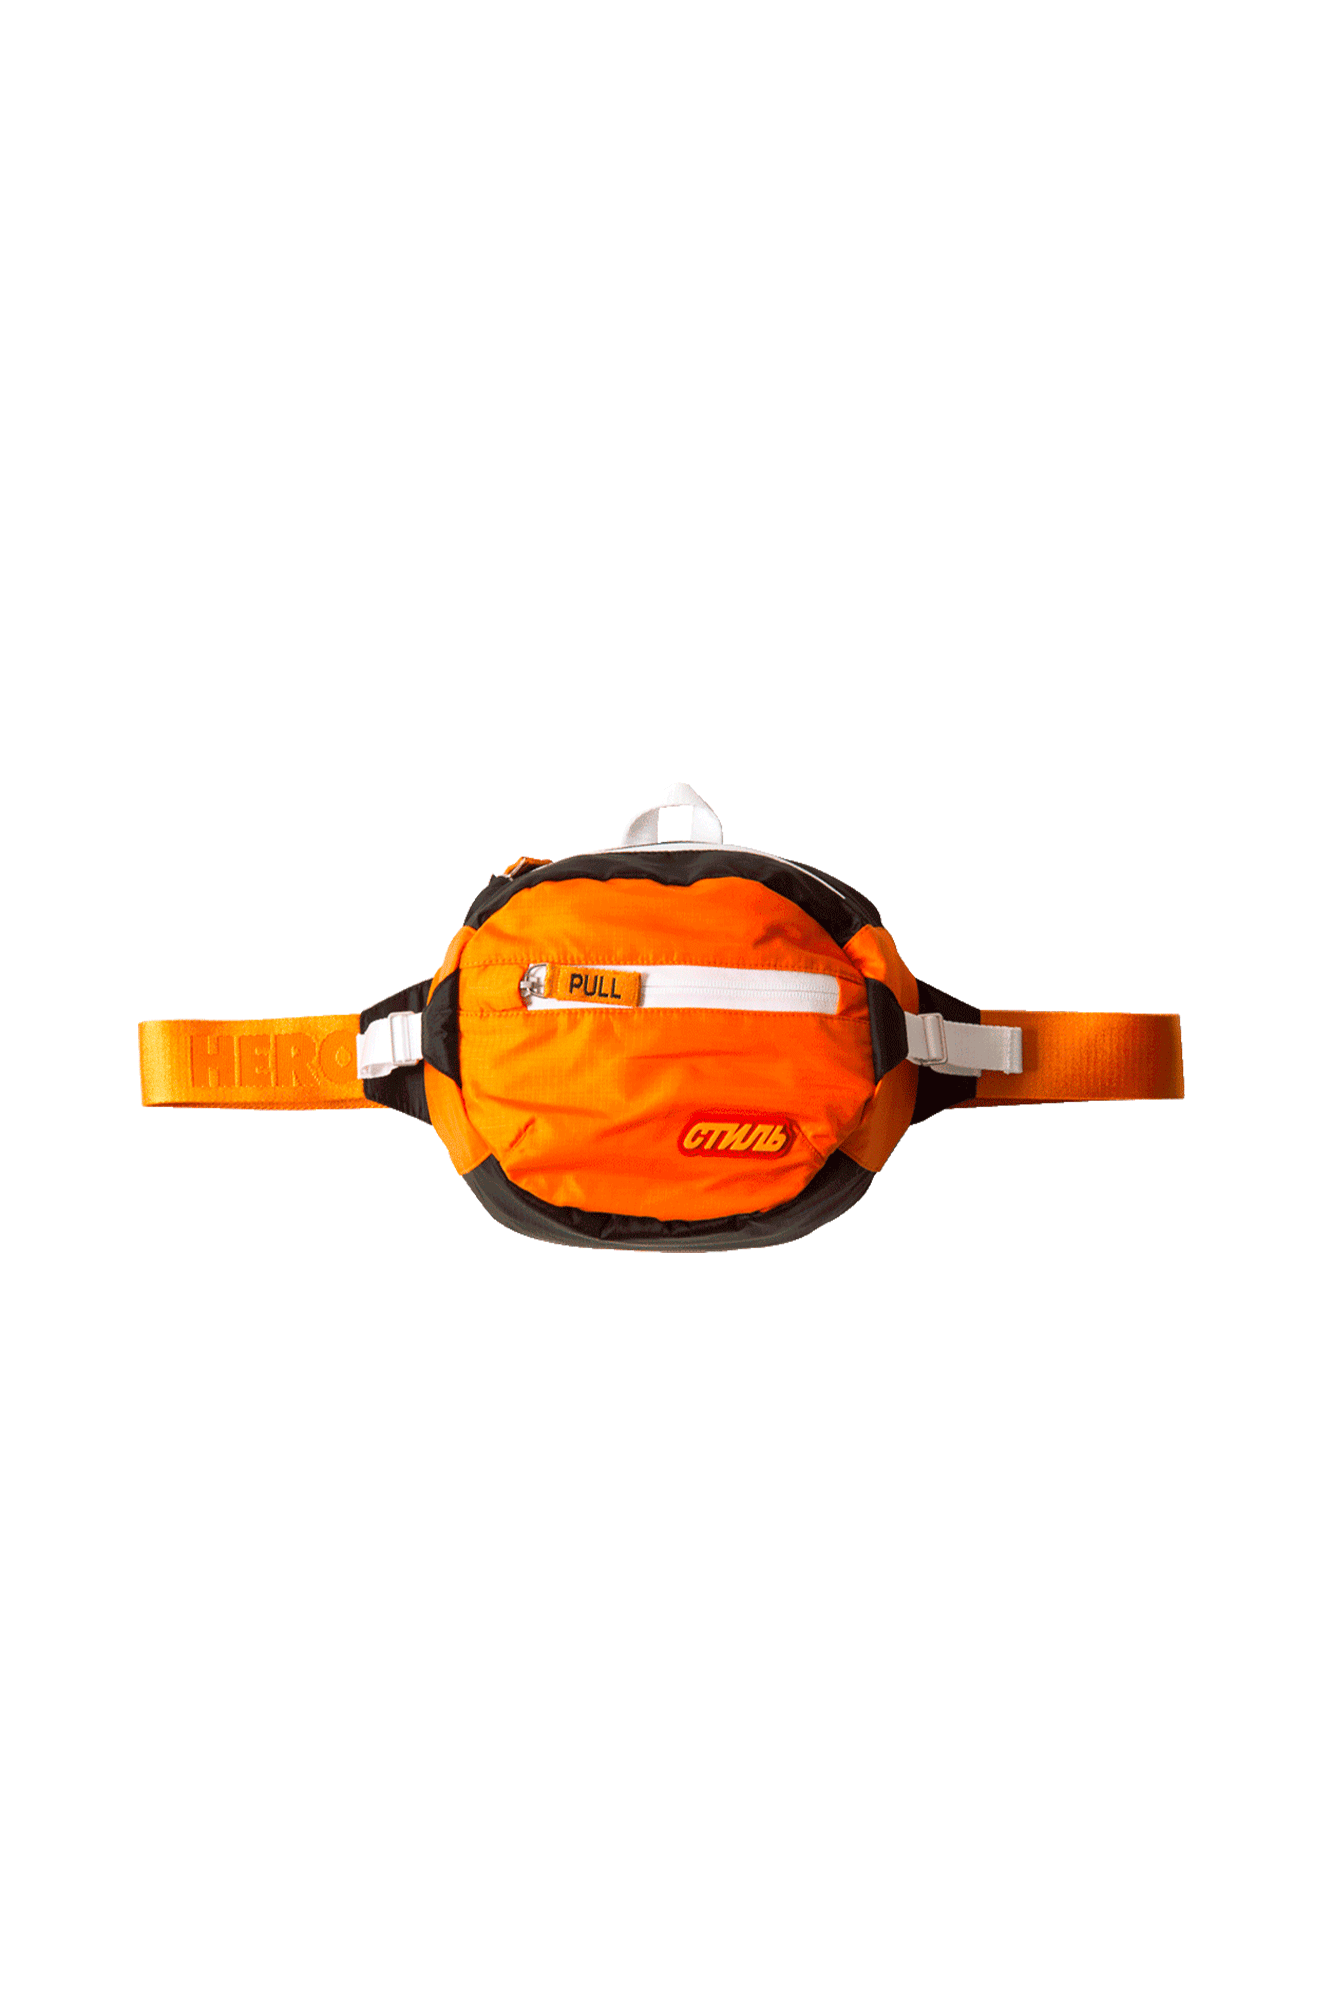 CTNMB Padded Fanny Pack Orange Orange Orange